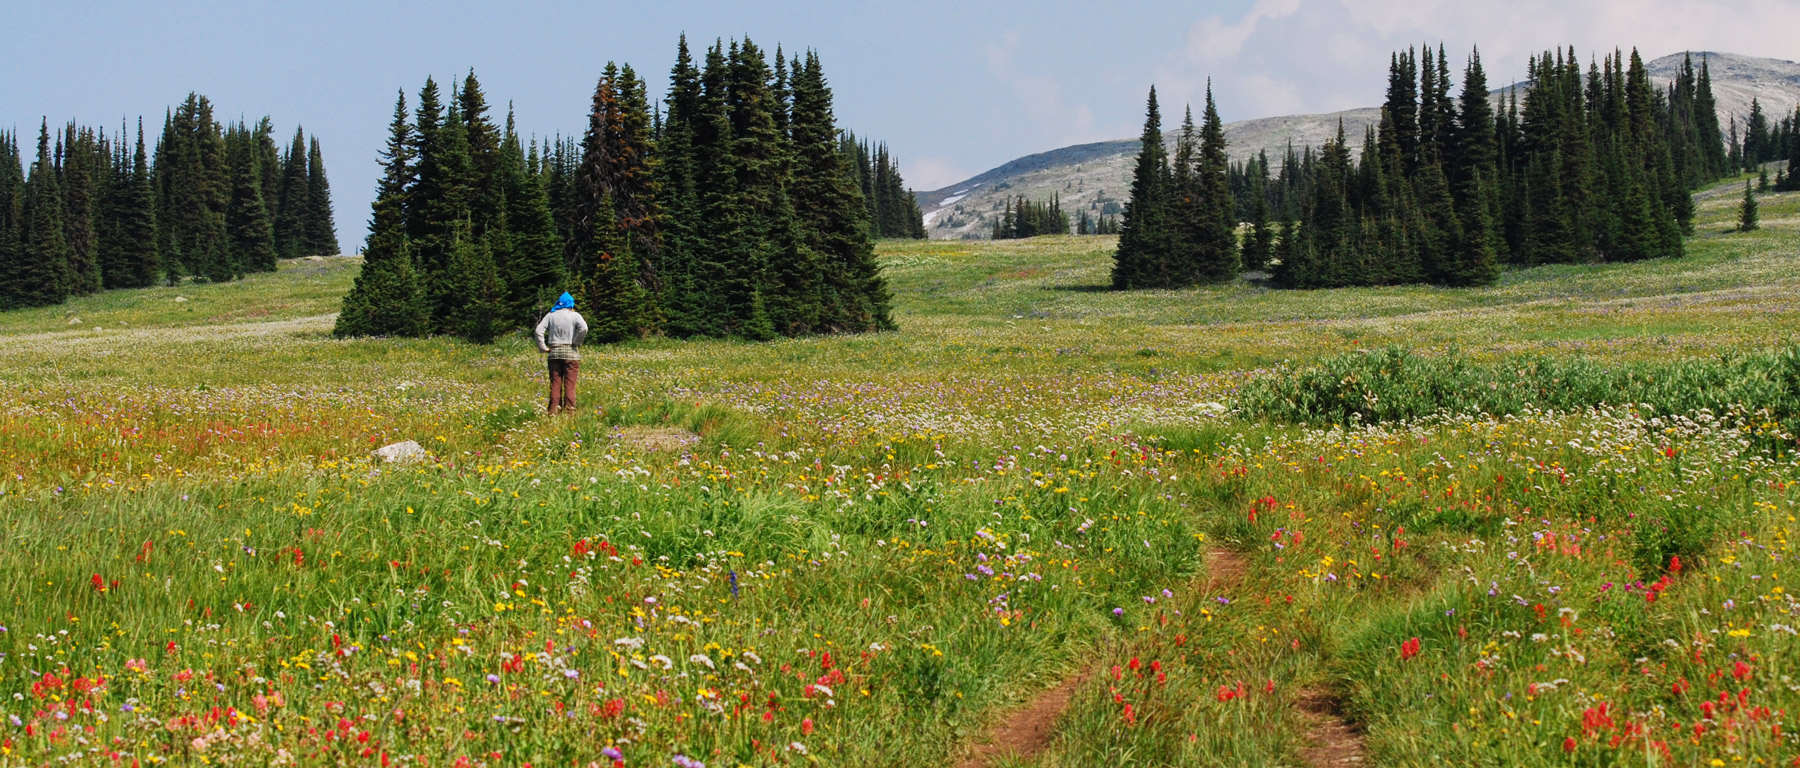 Wildflower field in Manning Park, BC